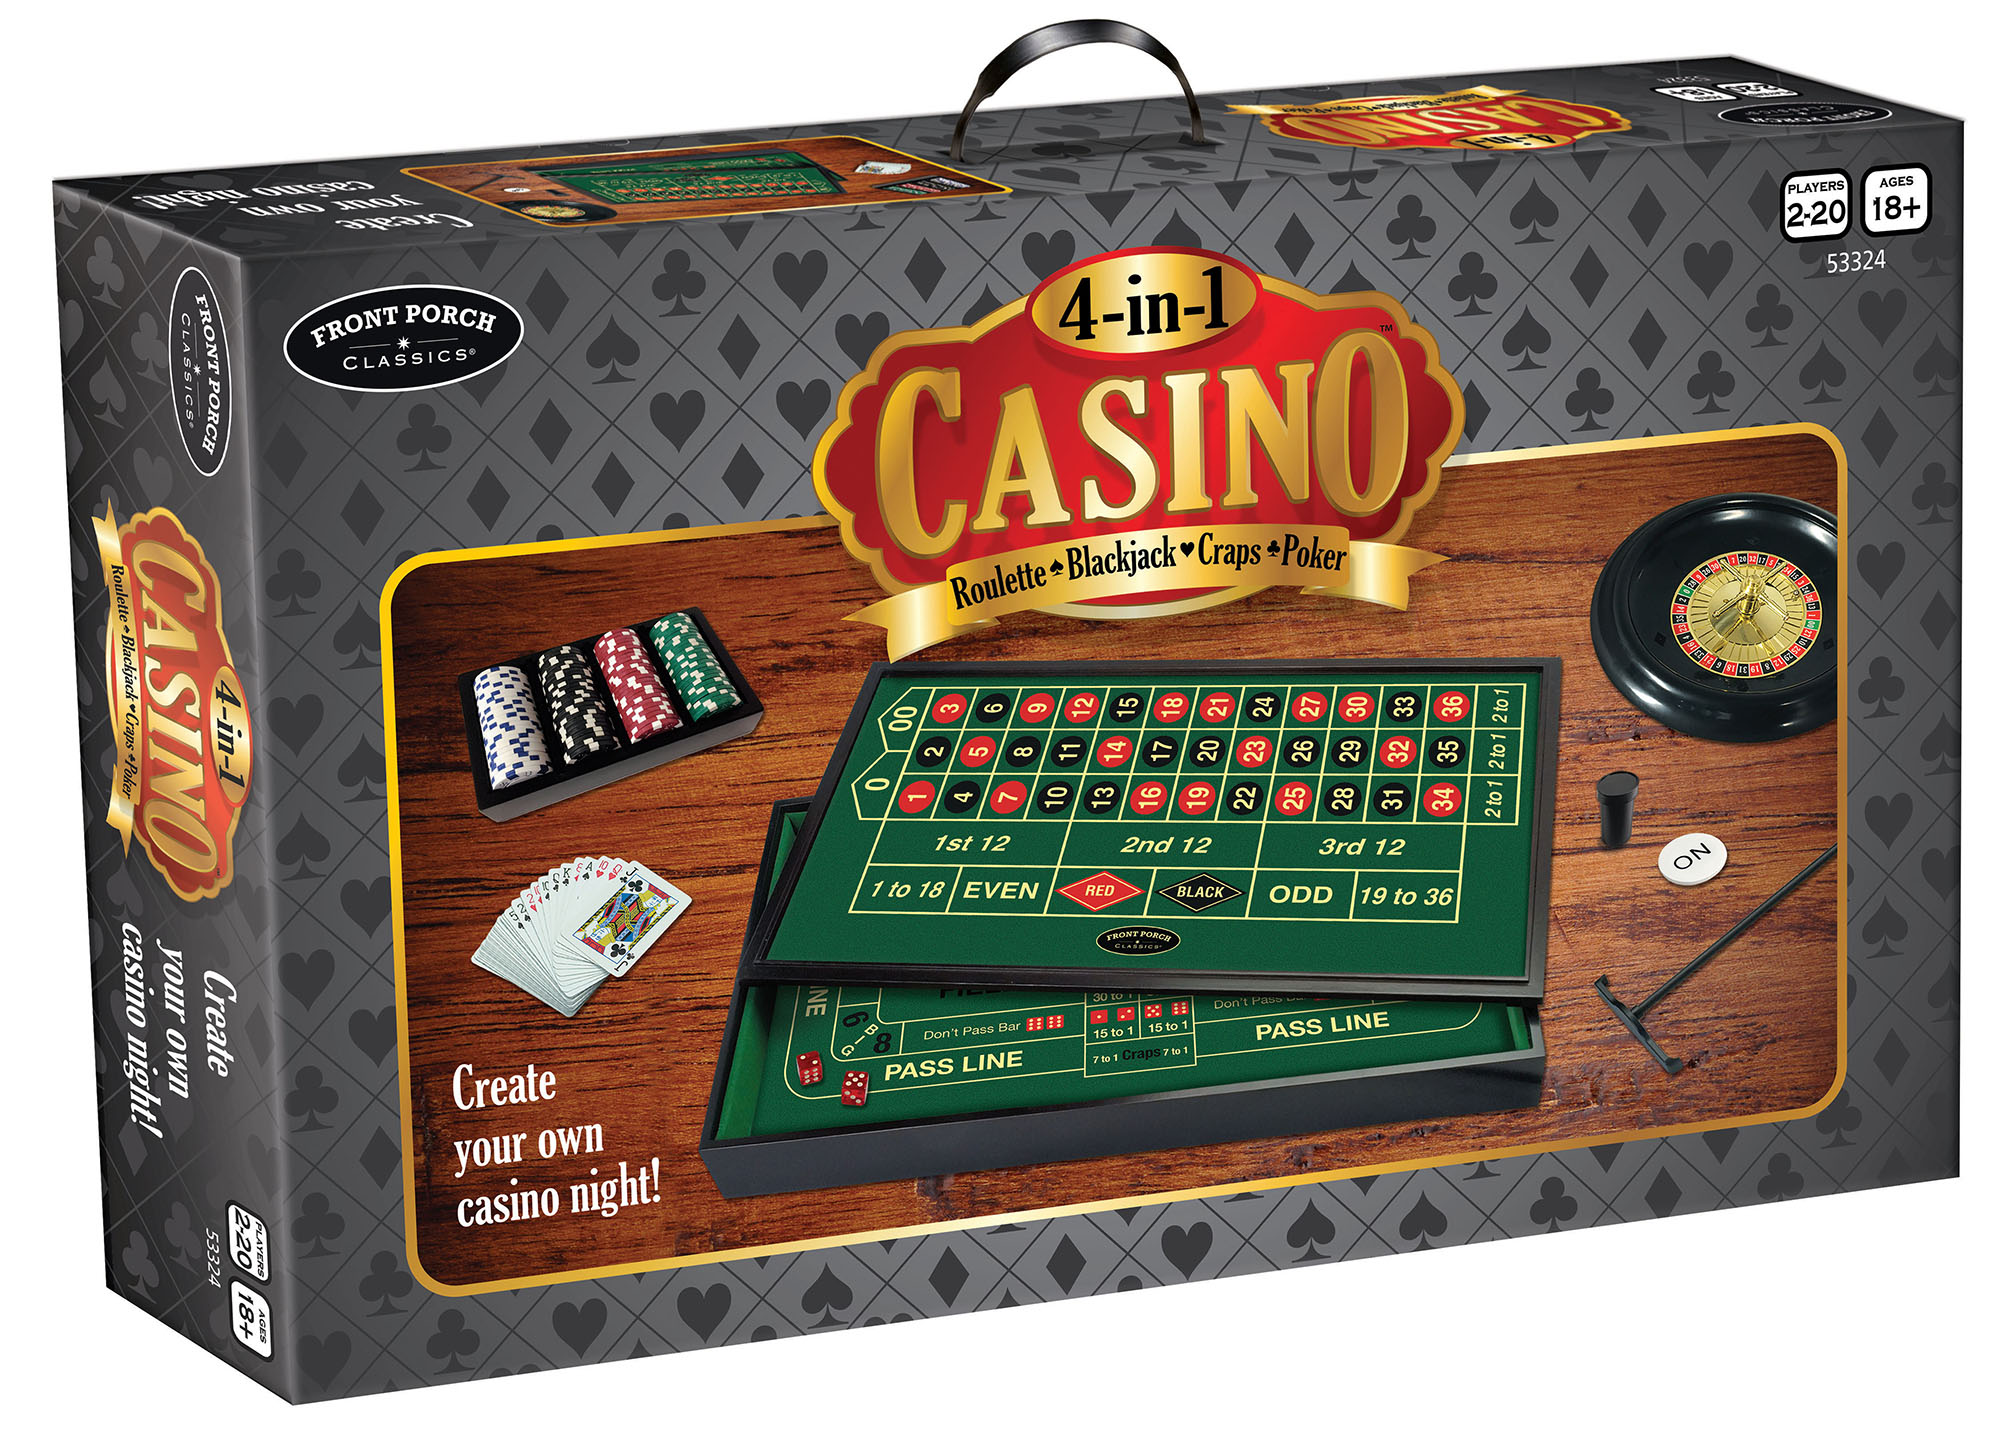 53324 4-in-1 Casino FINAL package